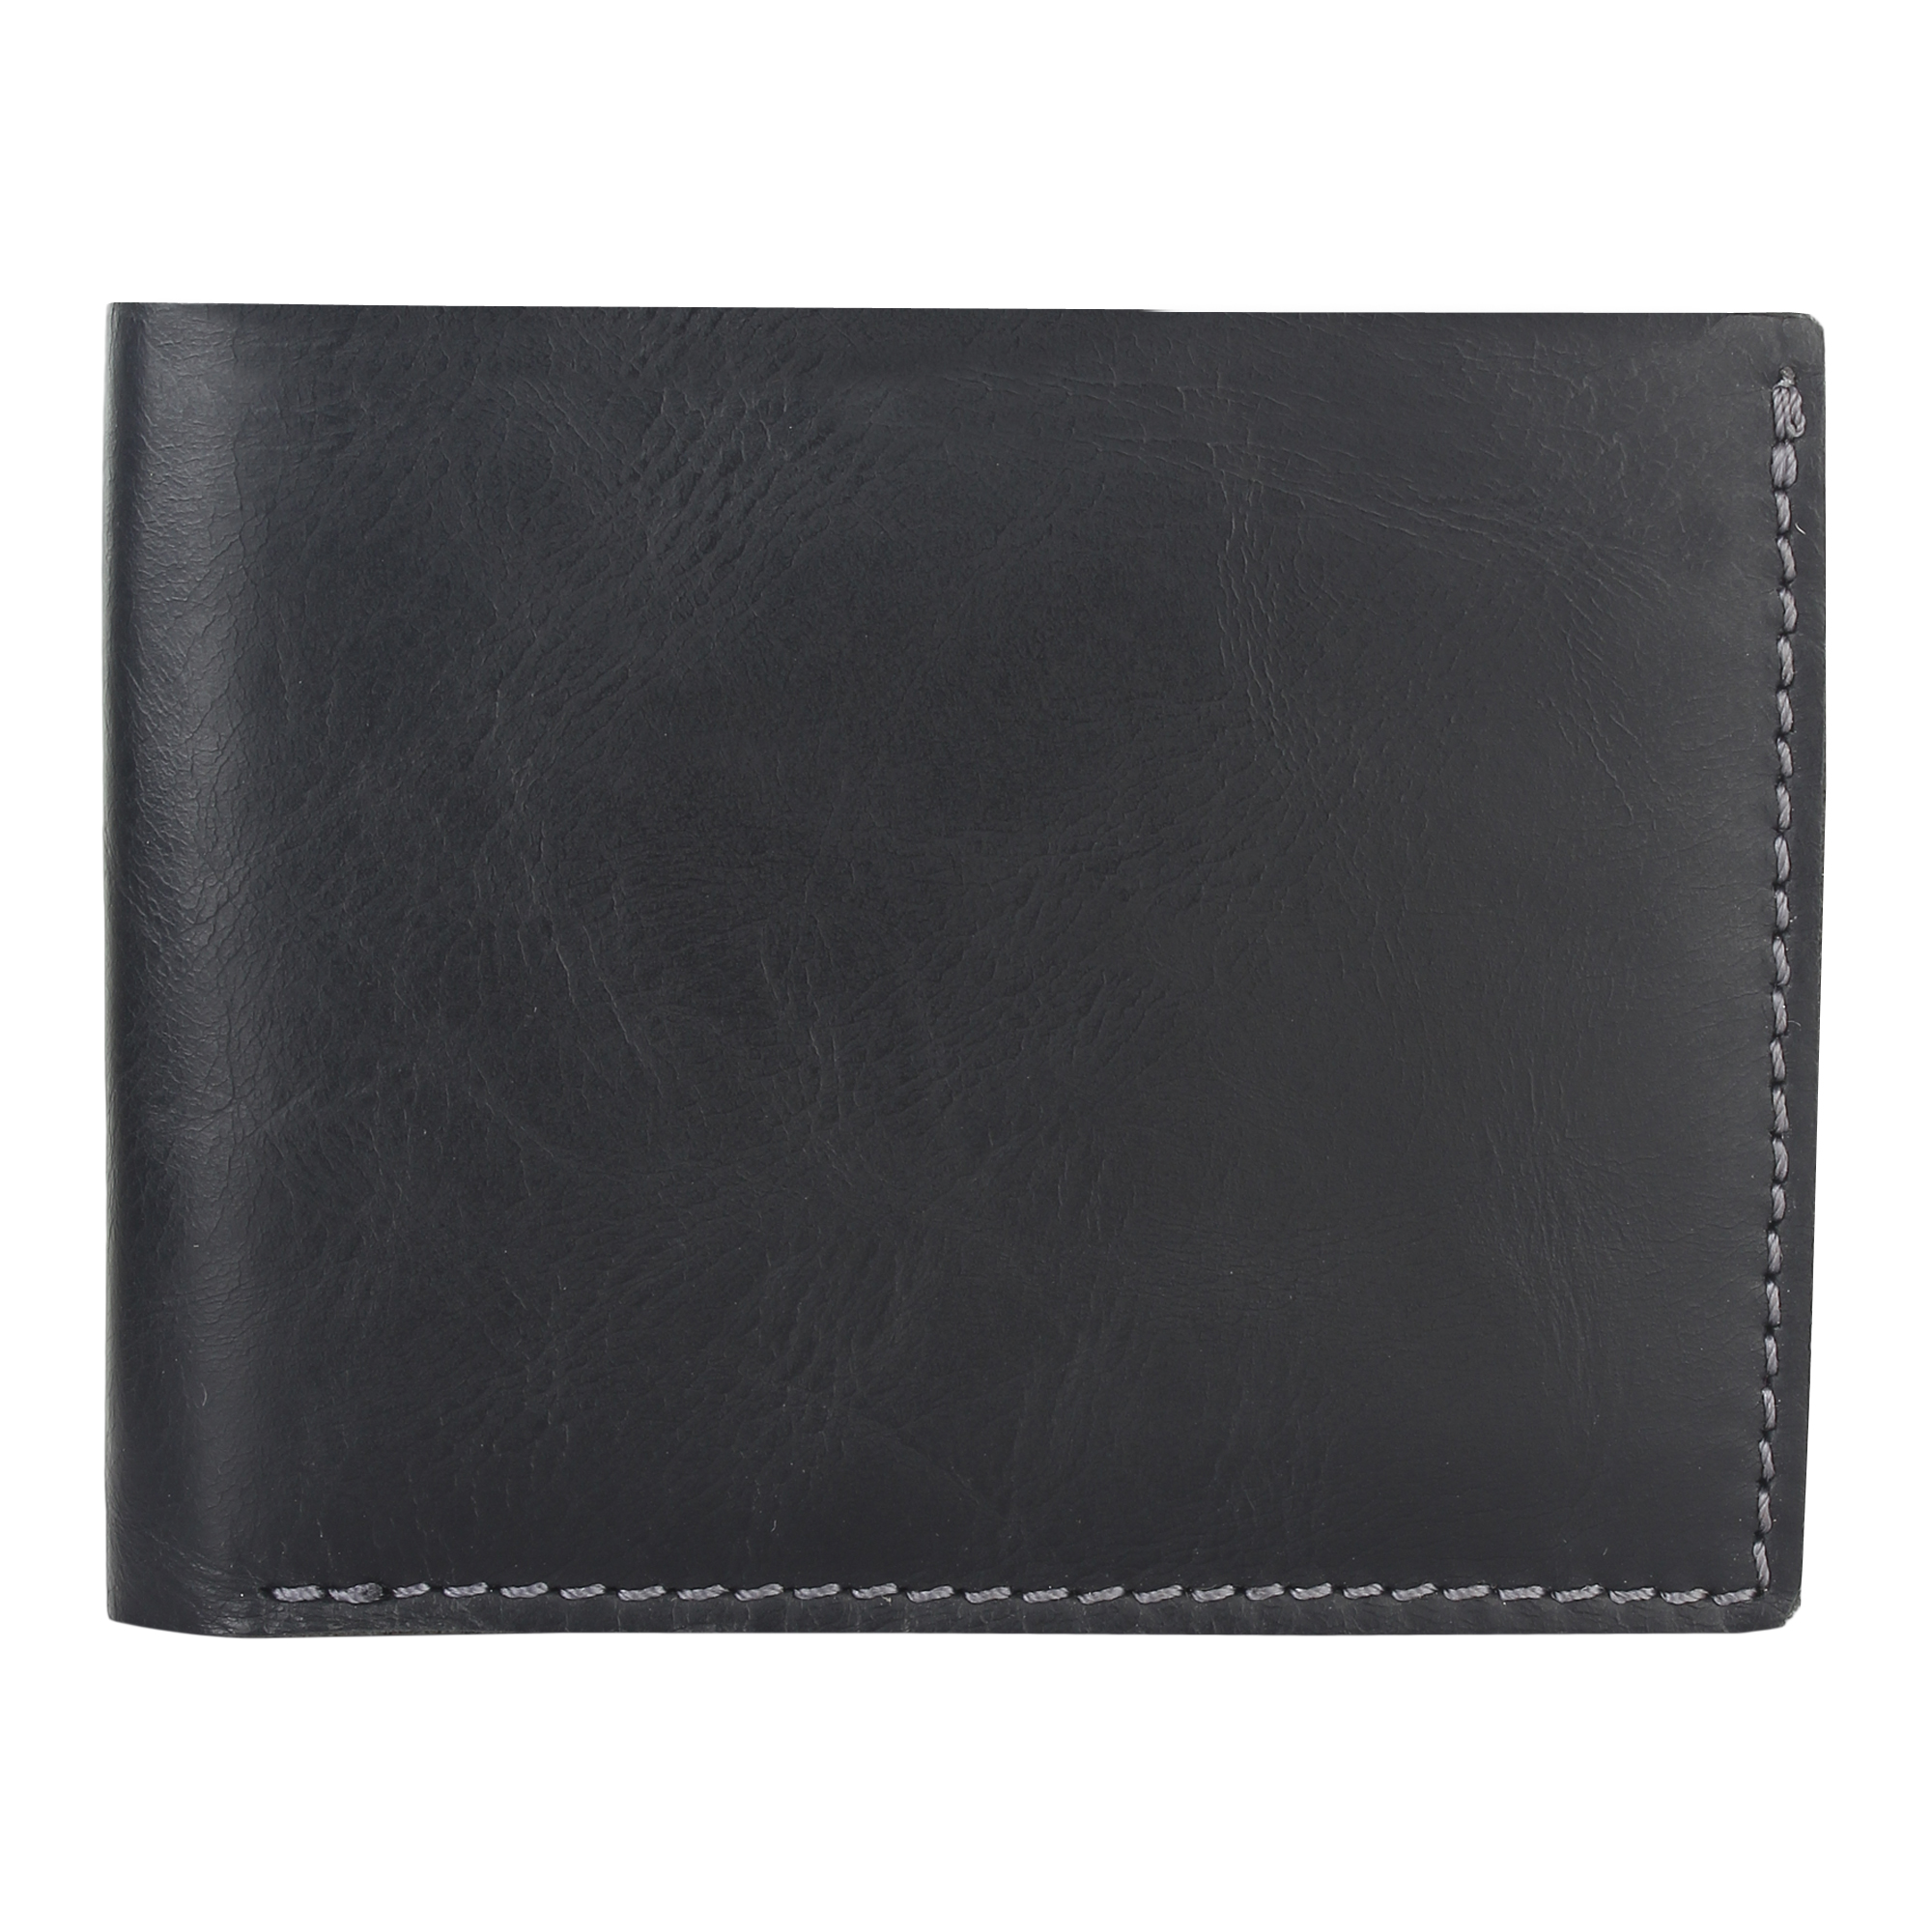 Leather Wallets Manufacturers in Dubai, Leather Wallets Suppliers in Dubai, Leather Wallets Wholesalers in Dubai, Leather Wallets Traders in Dubai